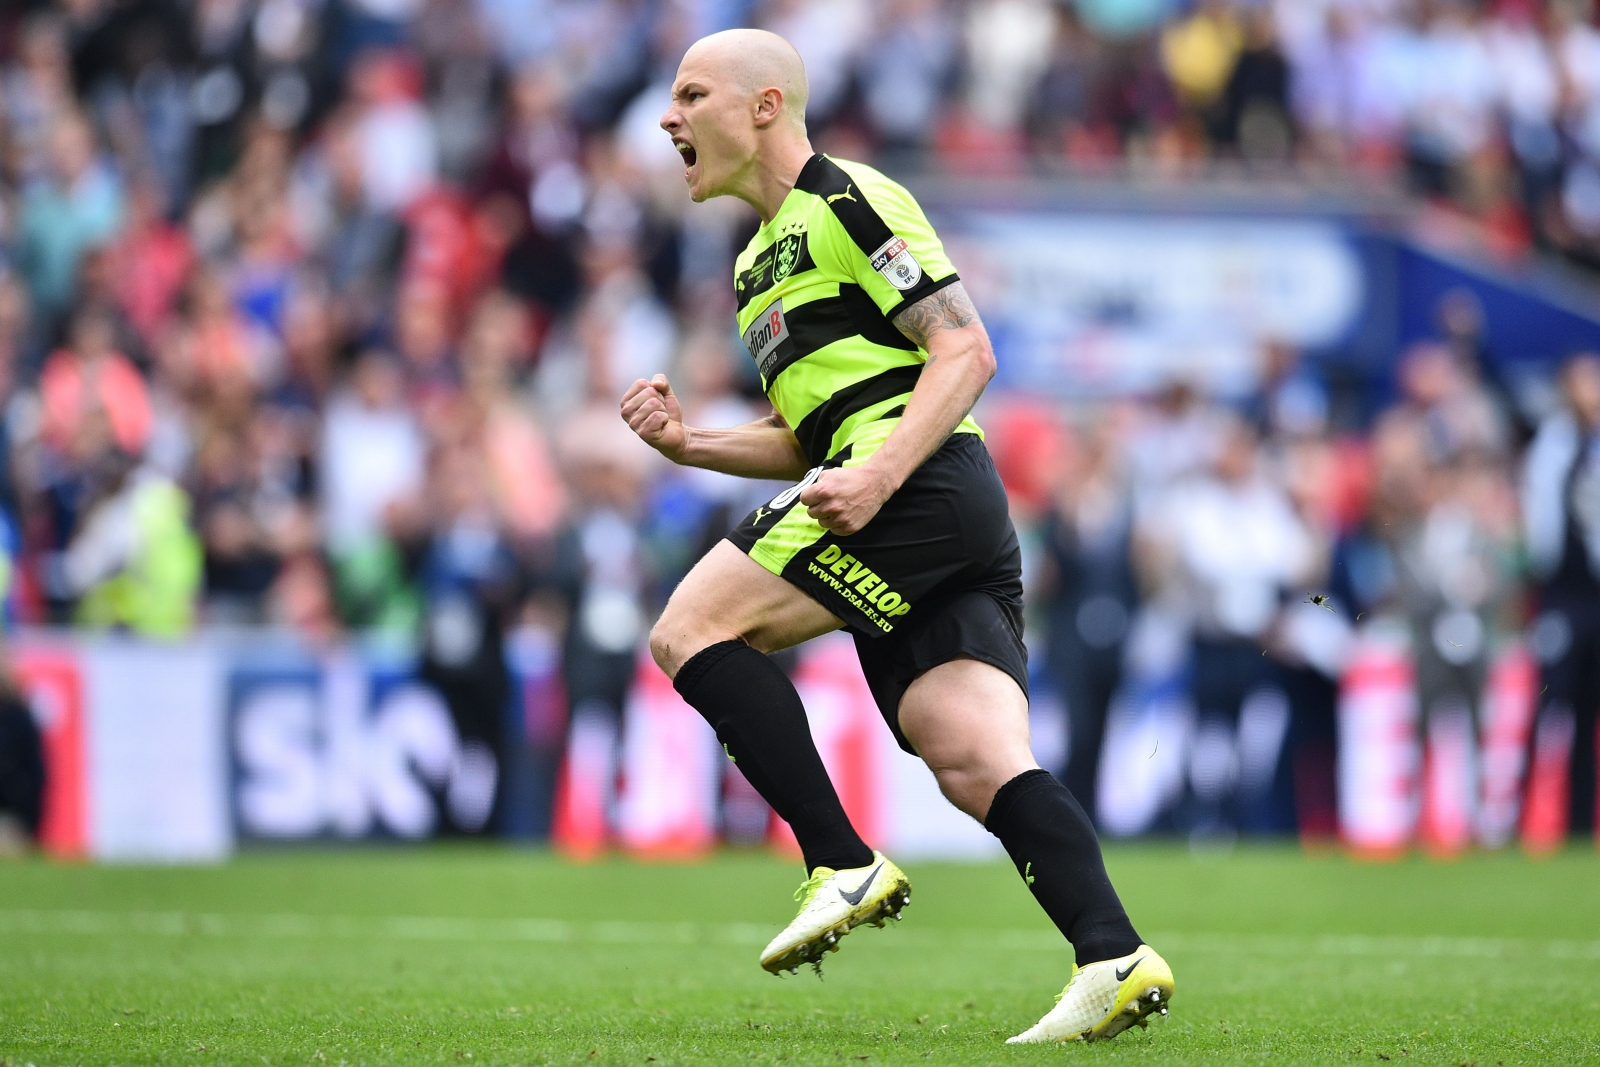 Huddersfield will shatter club transfer record to sign £10m Mooy